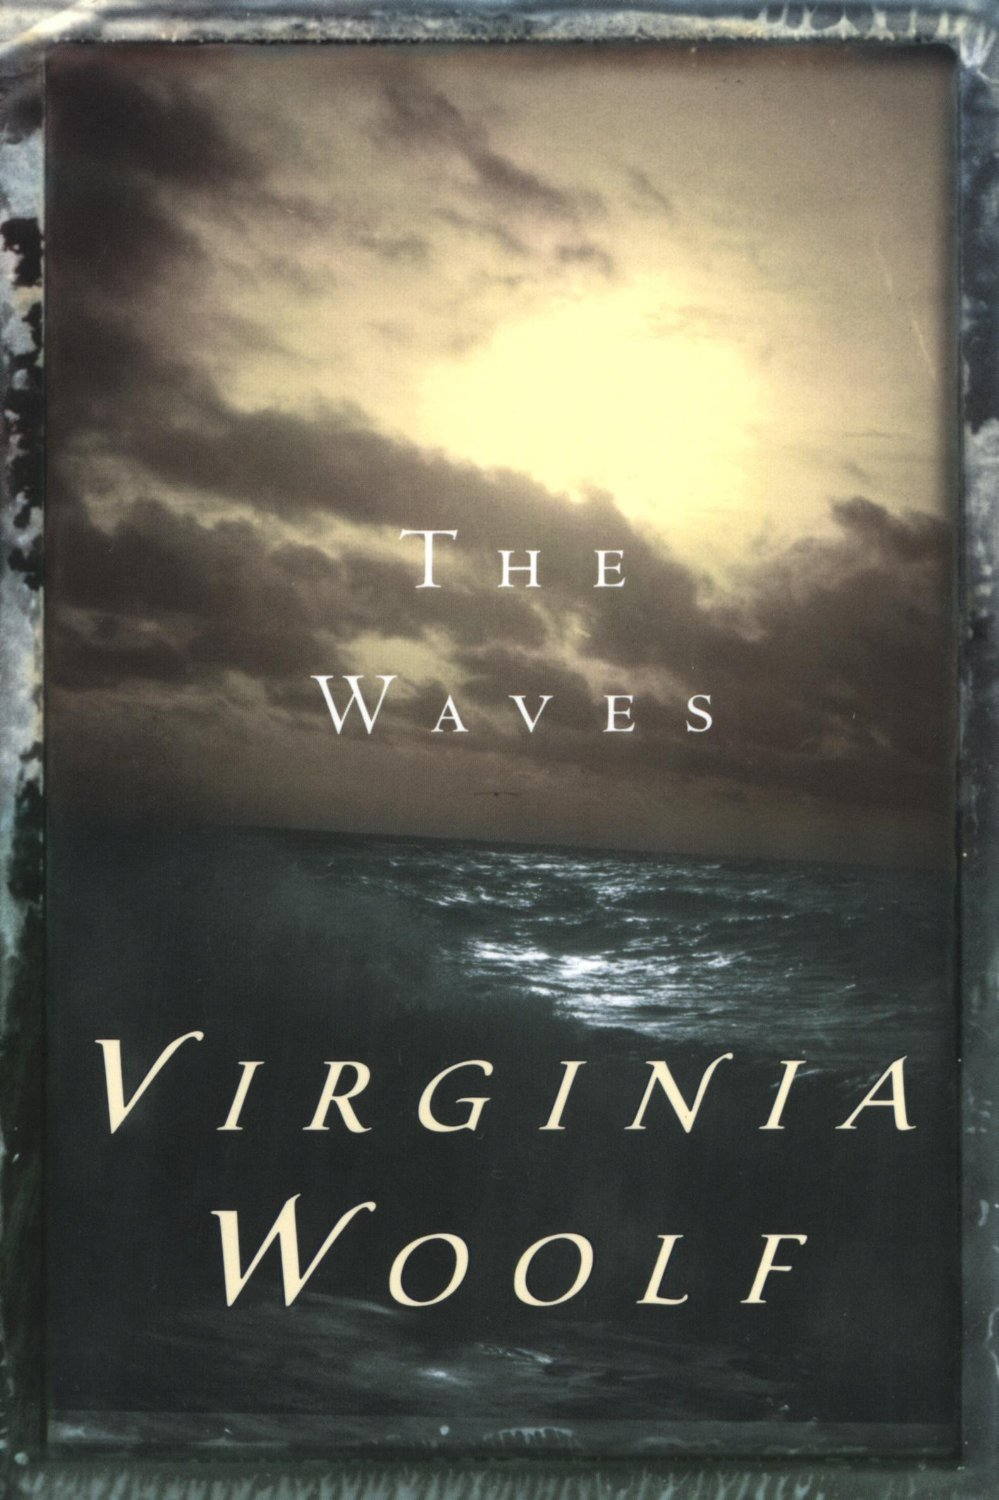 The Waves Virginia Woolf.jpg